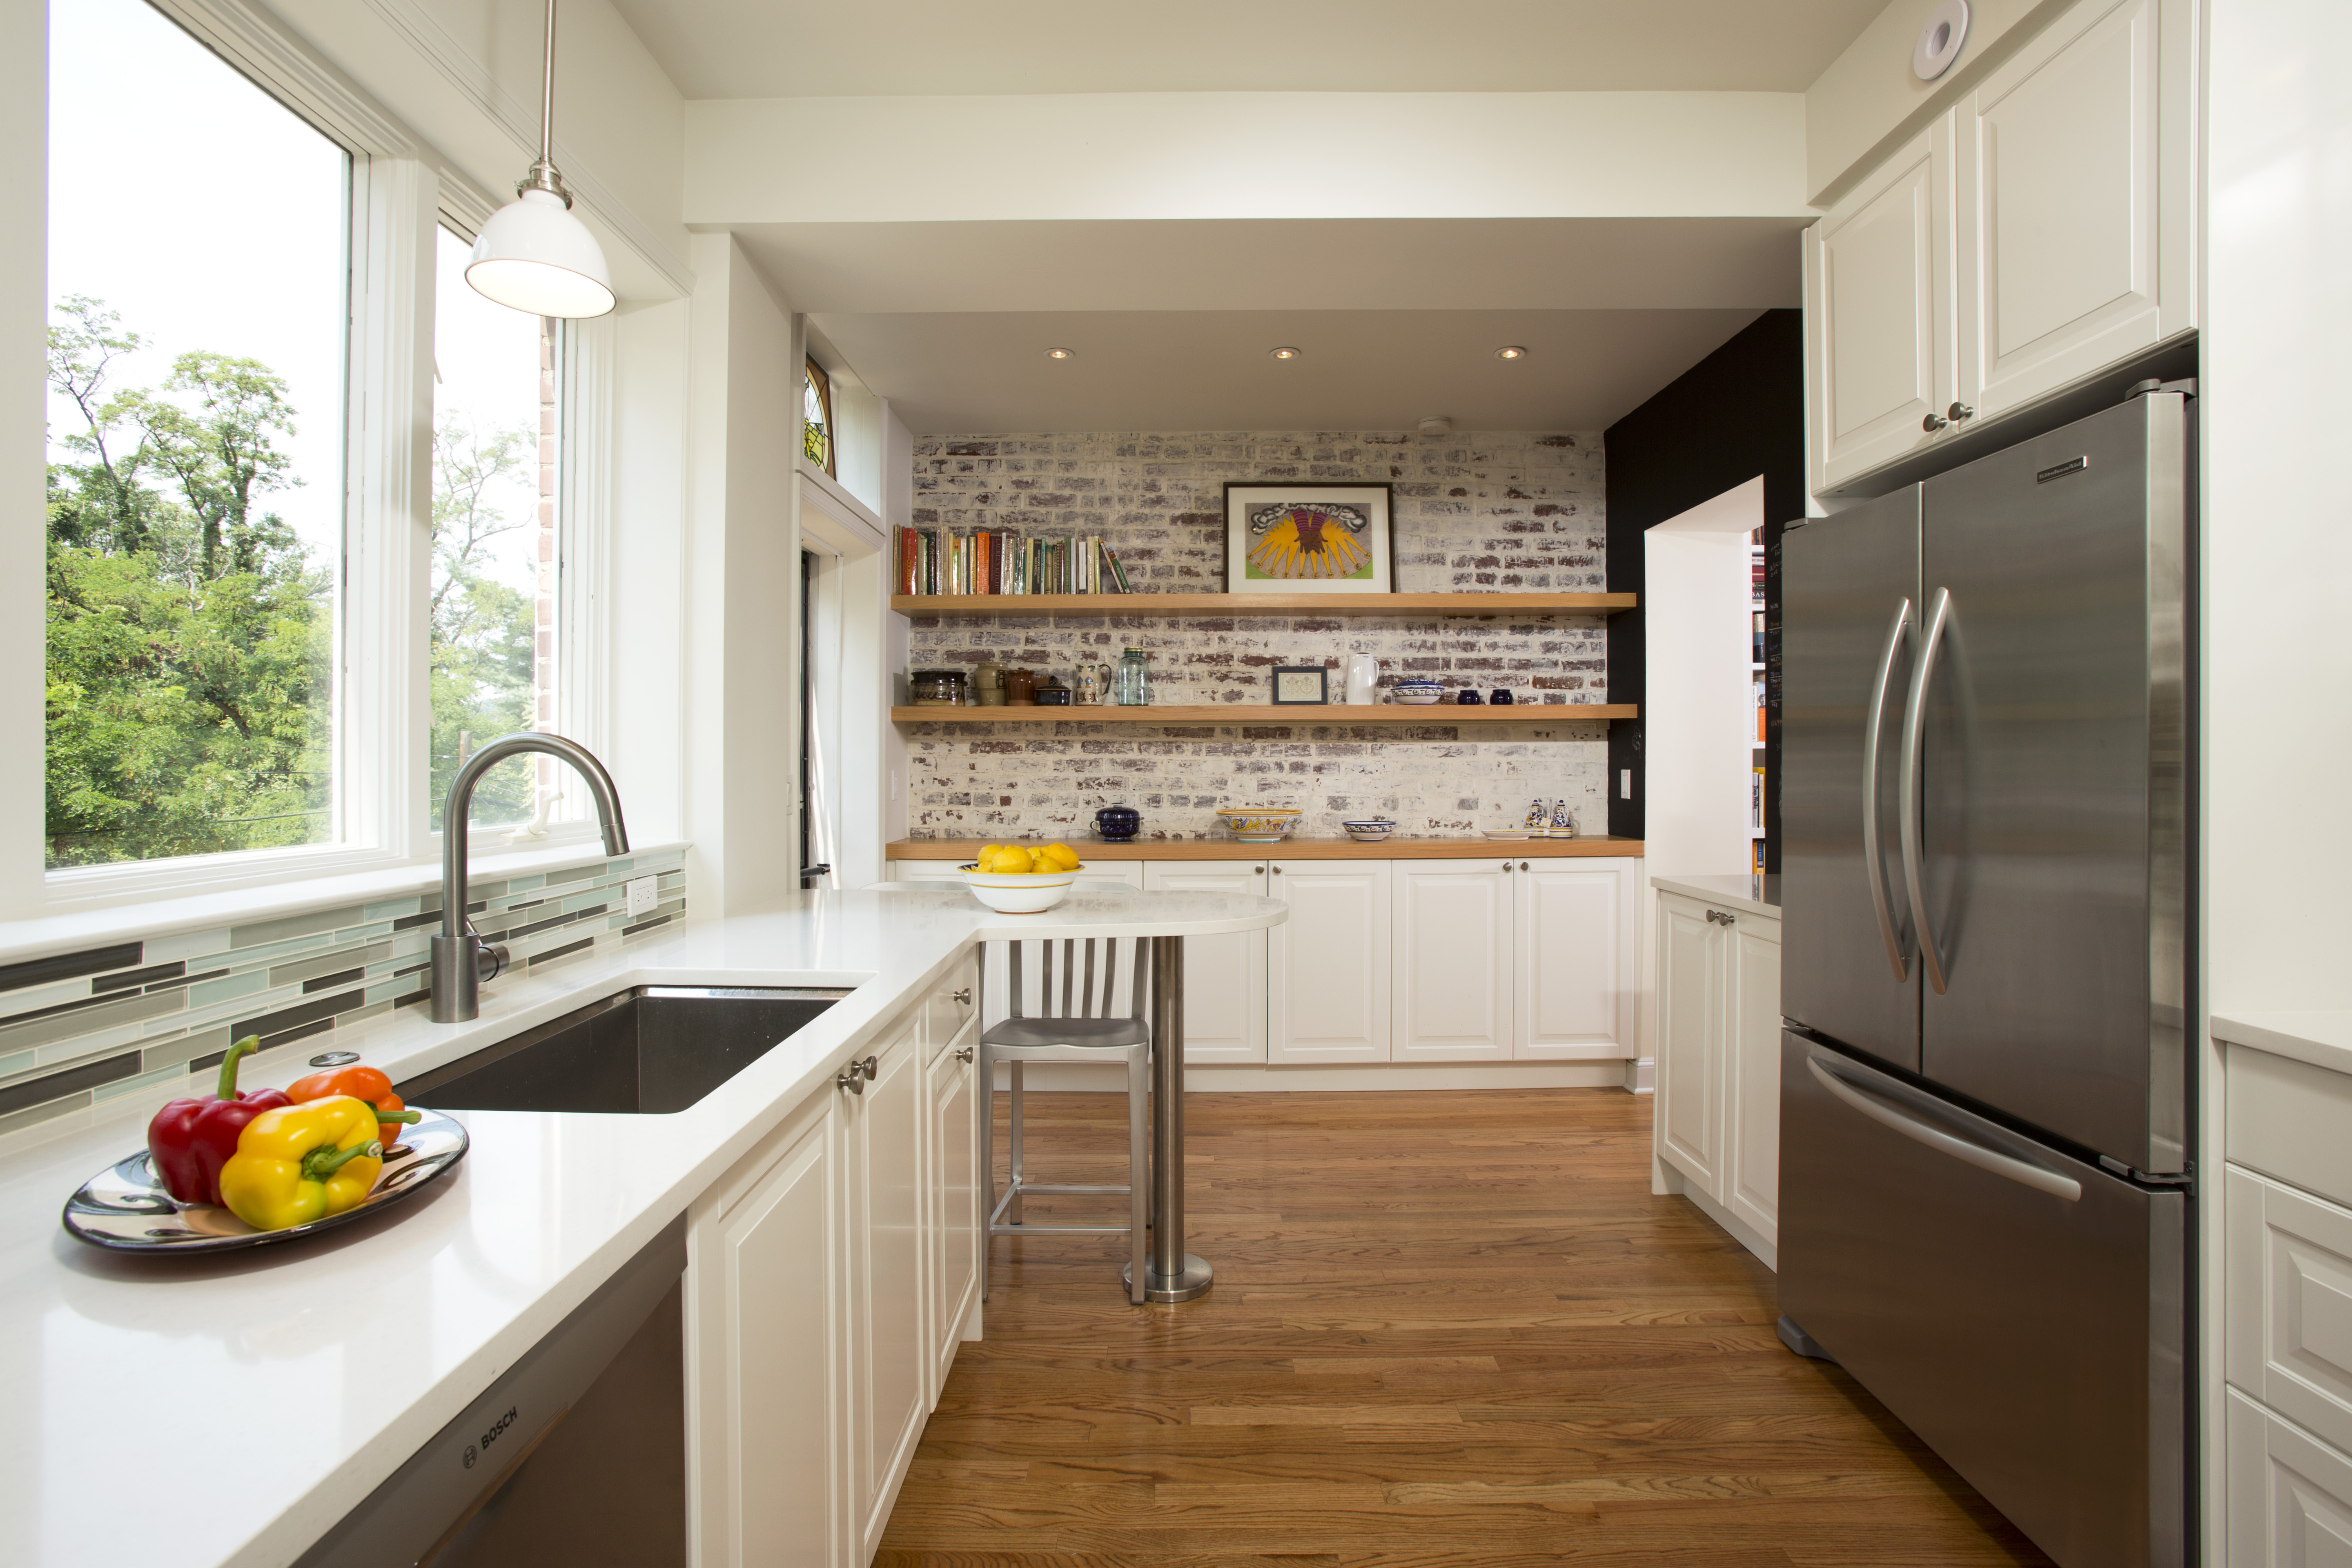 Kitchen And Bath Design Washington Dc Mt Pleasant Washington Dc Kitchen Renovation Remodeling